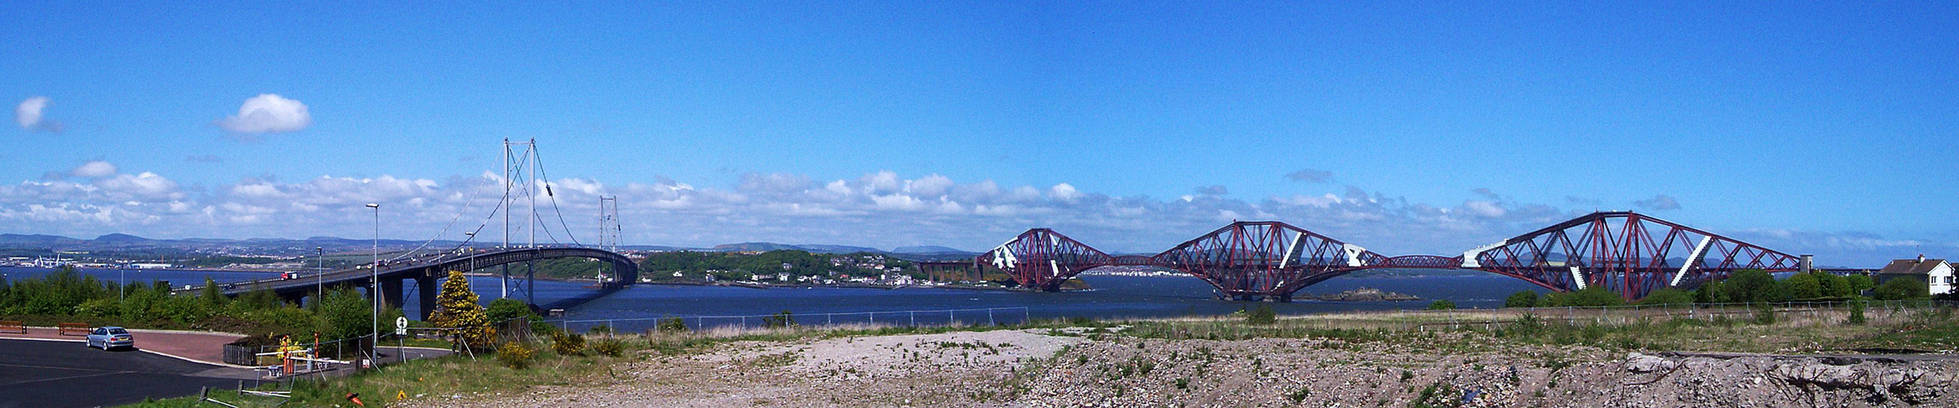 Forth Bridges, Scotland